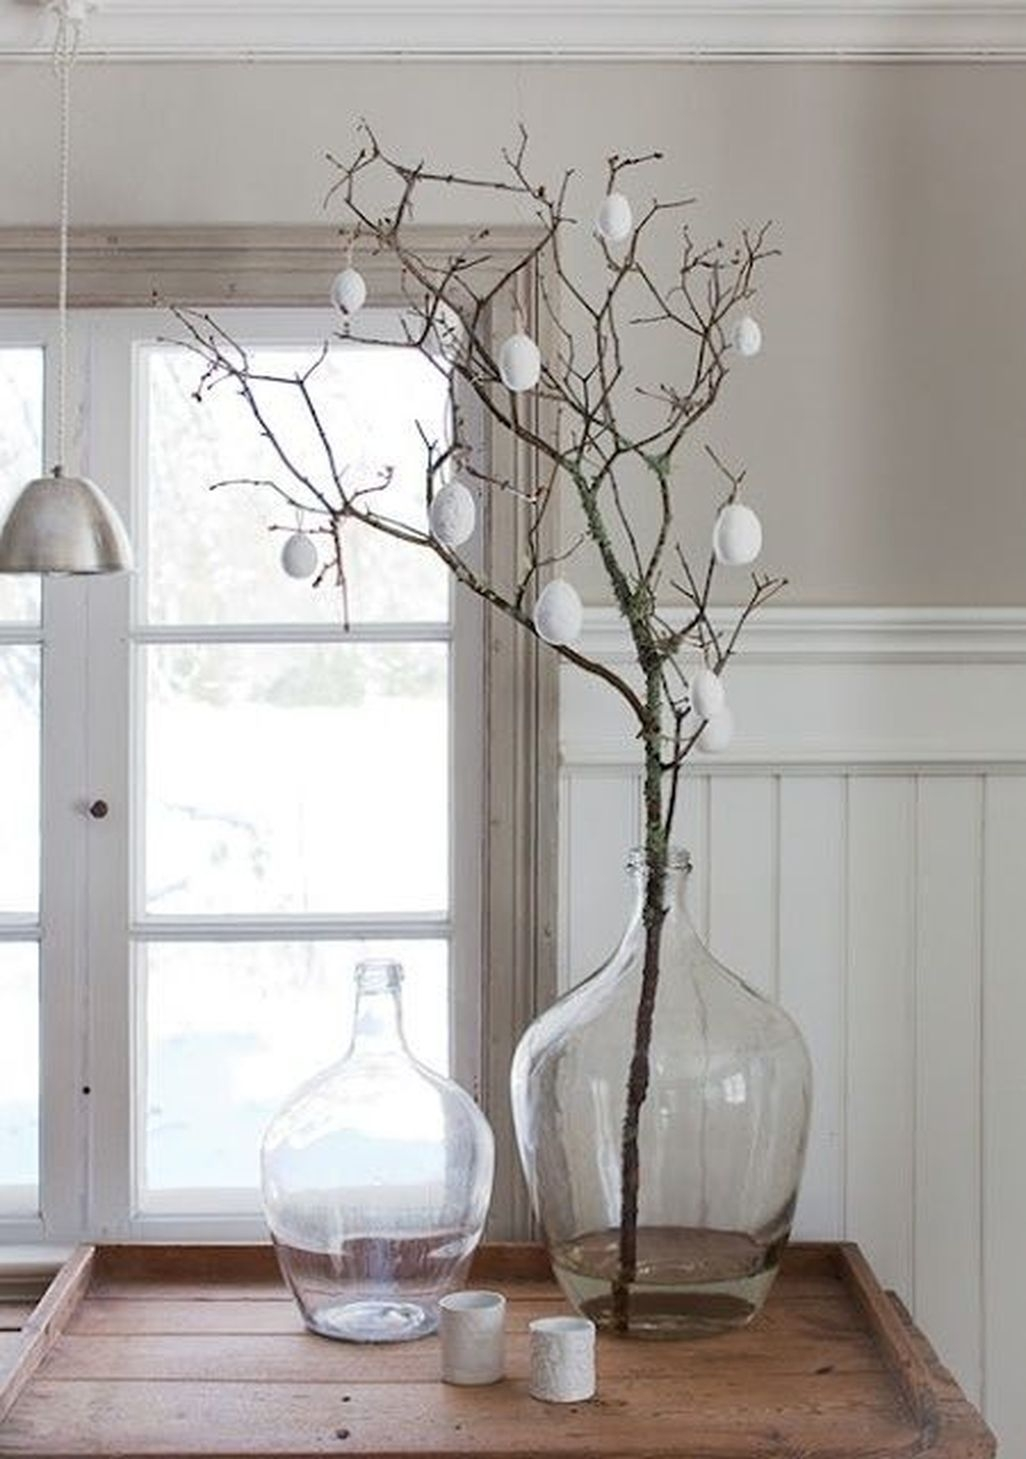 Minimalist Scandinavian Spring Decoration Ideas For Your Home 20